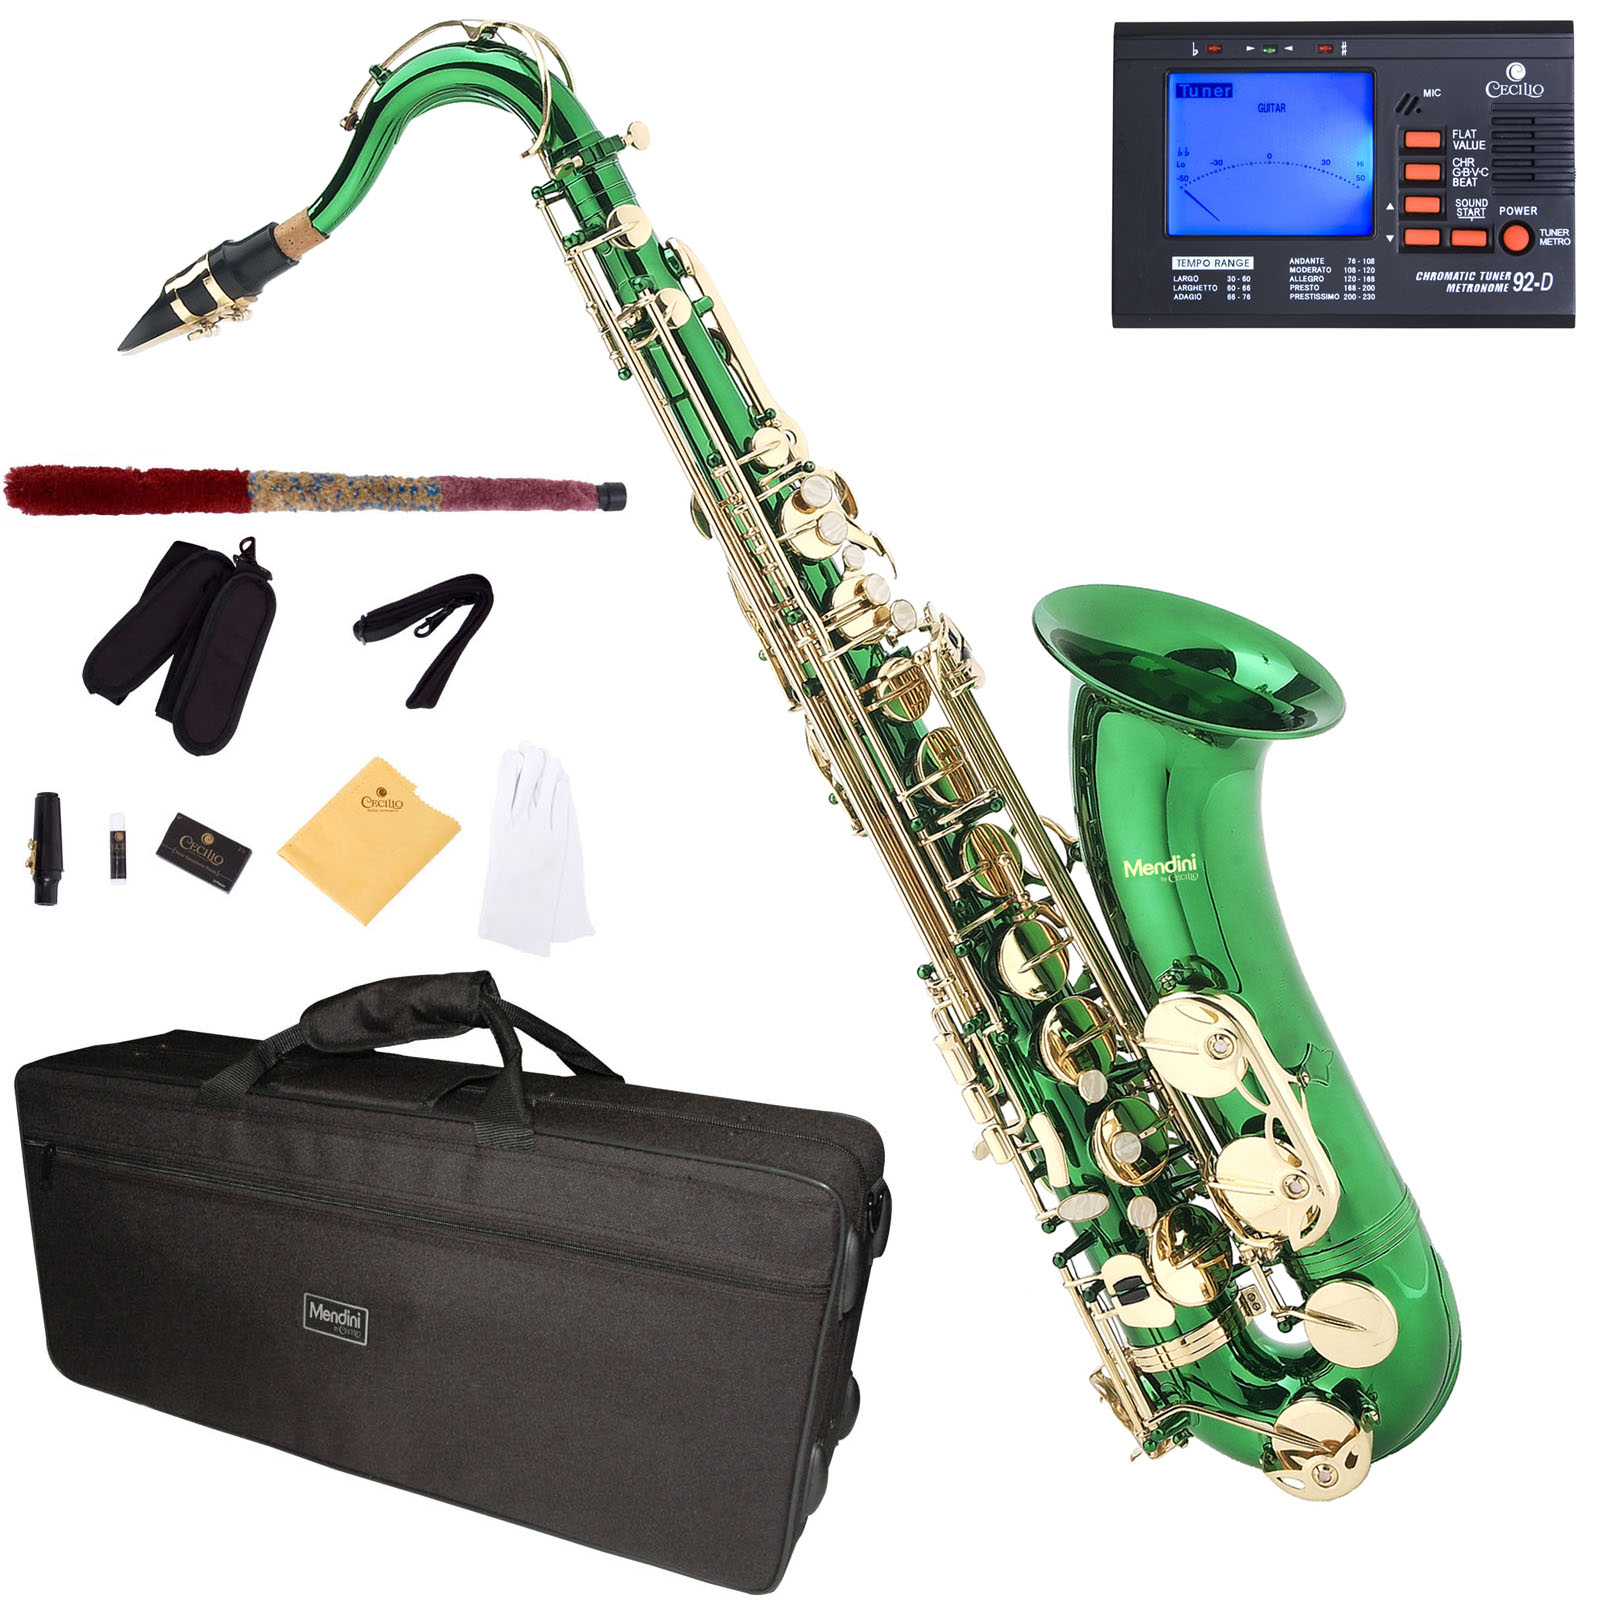 Mendini by Cecilio Bb Tenor Saxophone with Tuner, 10 Reeds, Mouthpiece and Case, MTS-GL Green Lacquer